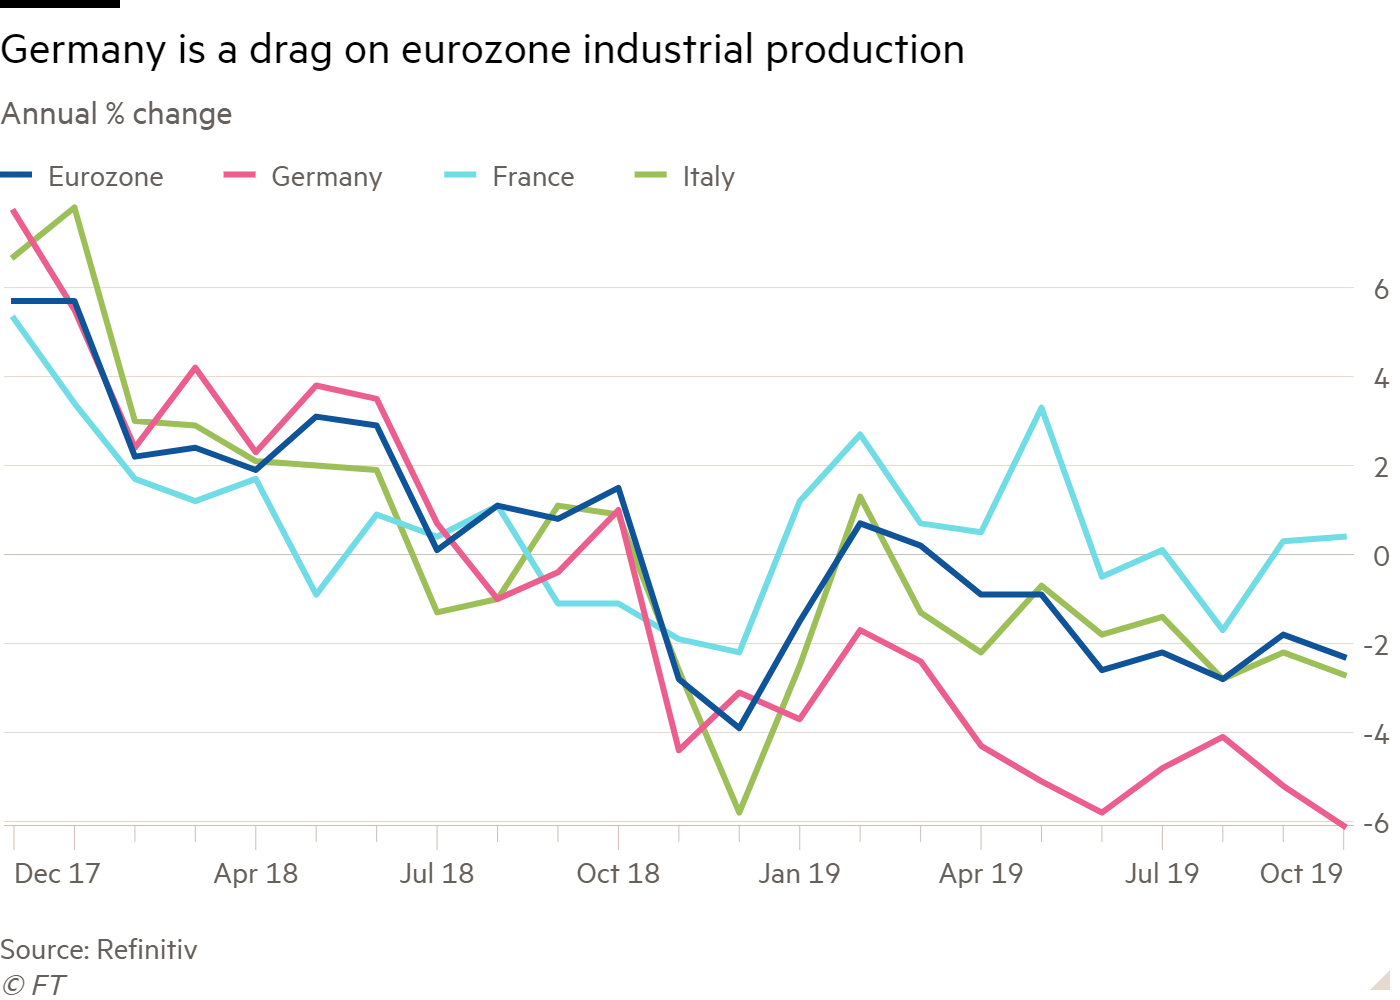 Line chart of Annual  % change showing Germany is a drag on eurozone industrial production